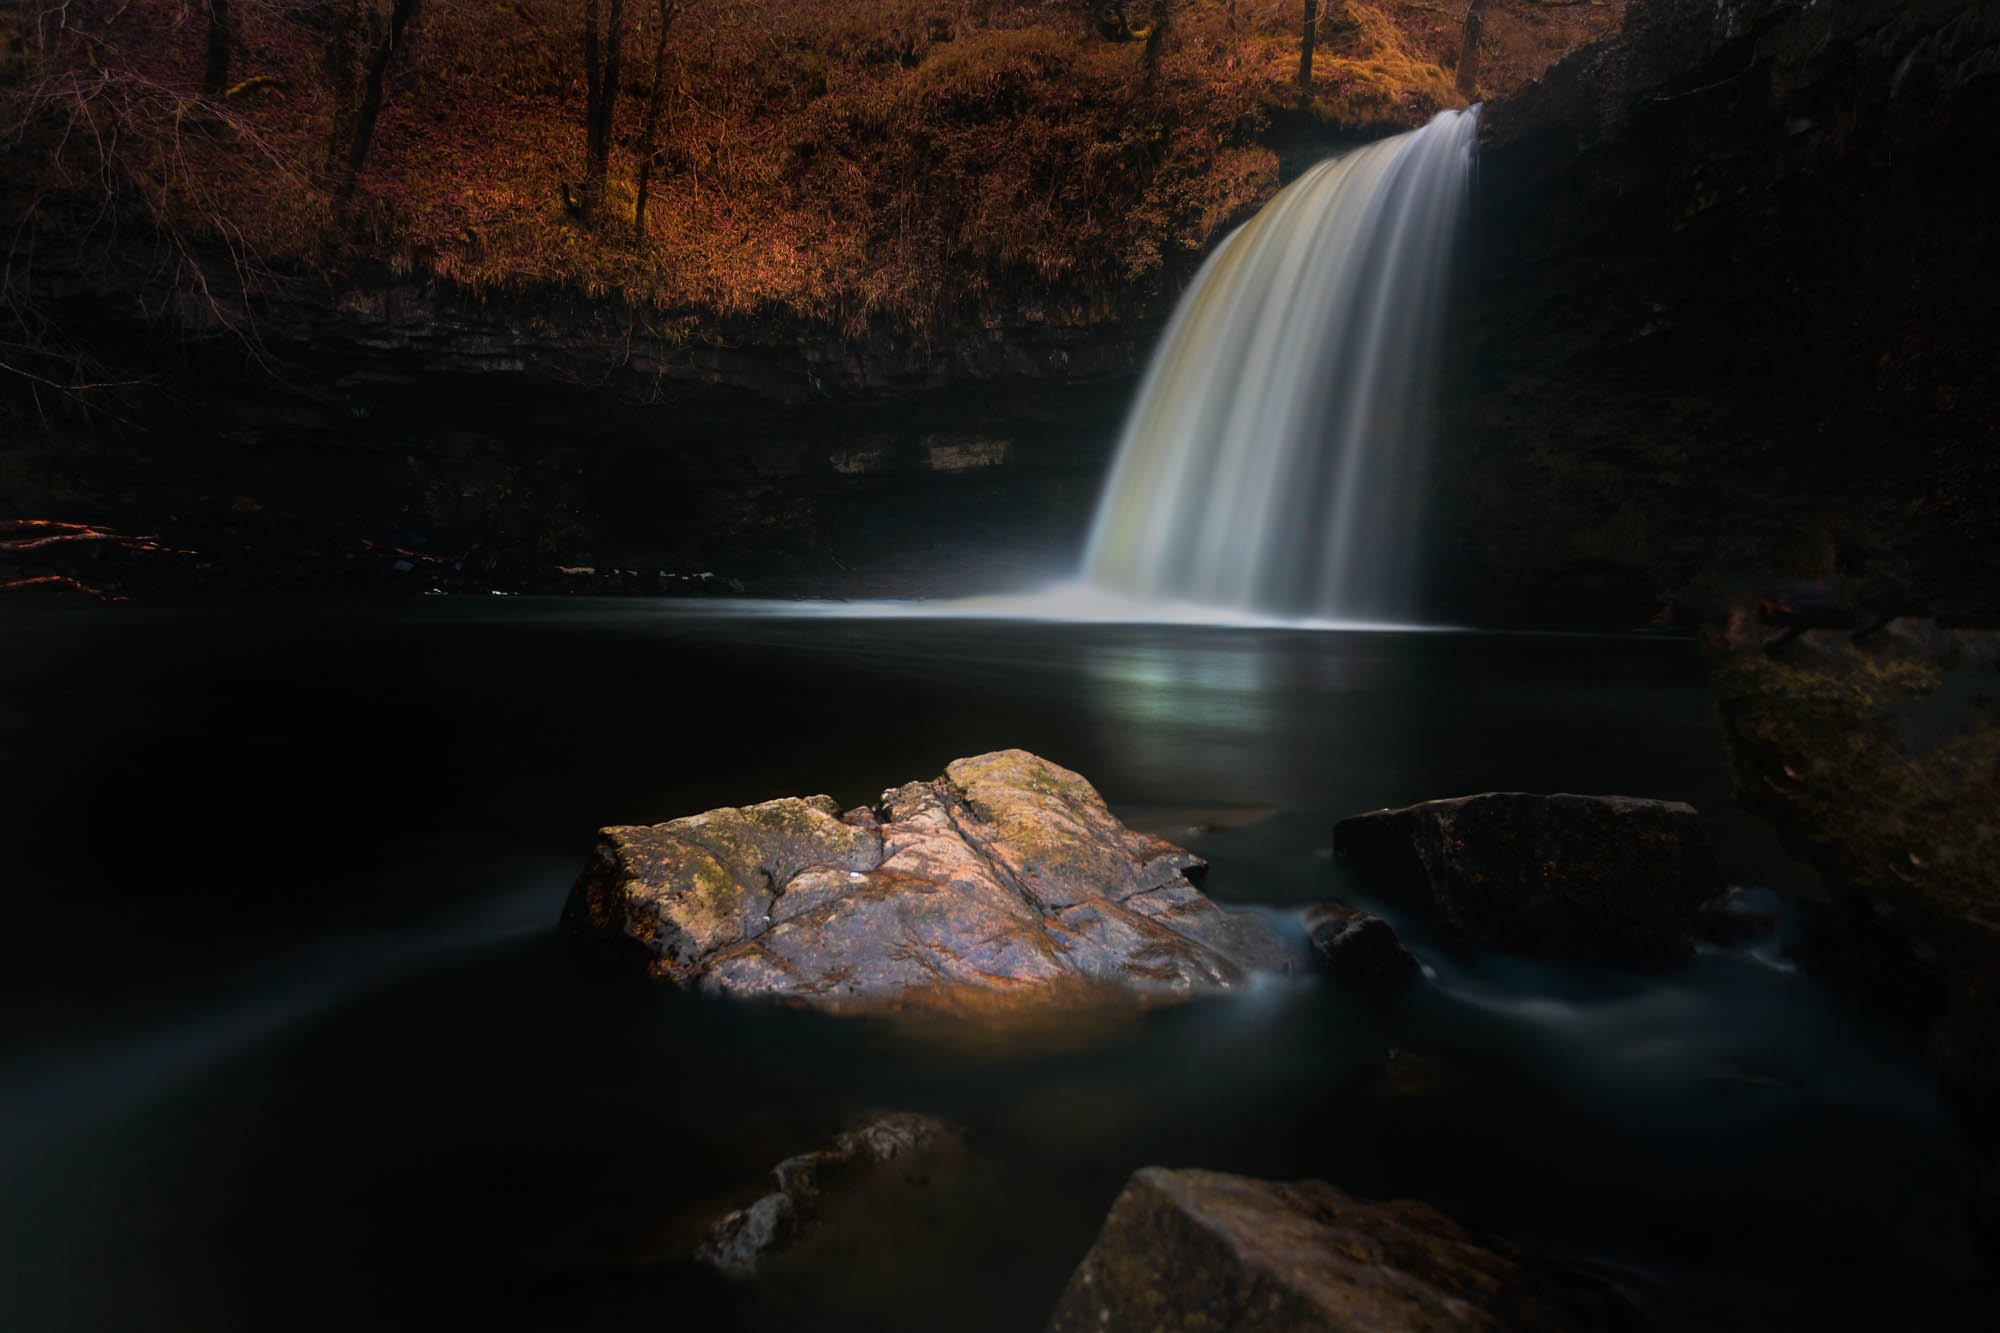 A dark and moody long exposure of the waterfall known as Lady Falls or Sgwd Gwladus on the river Afon Pyrddin near Pontneddfechan, South Wales, UK